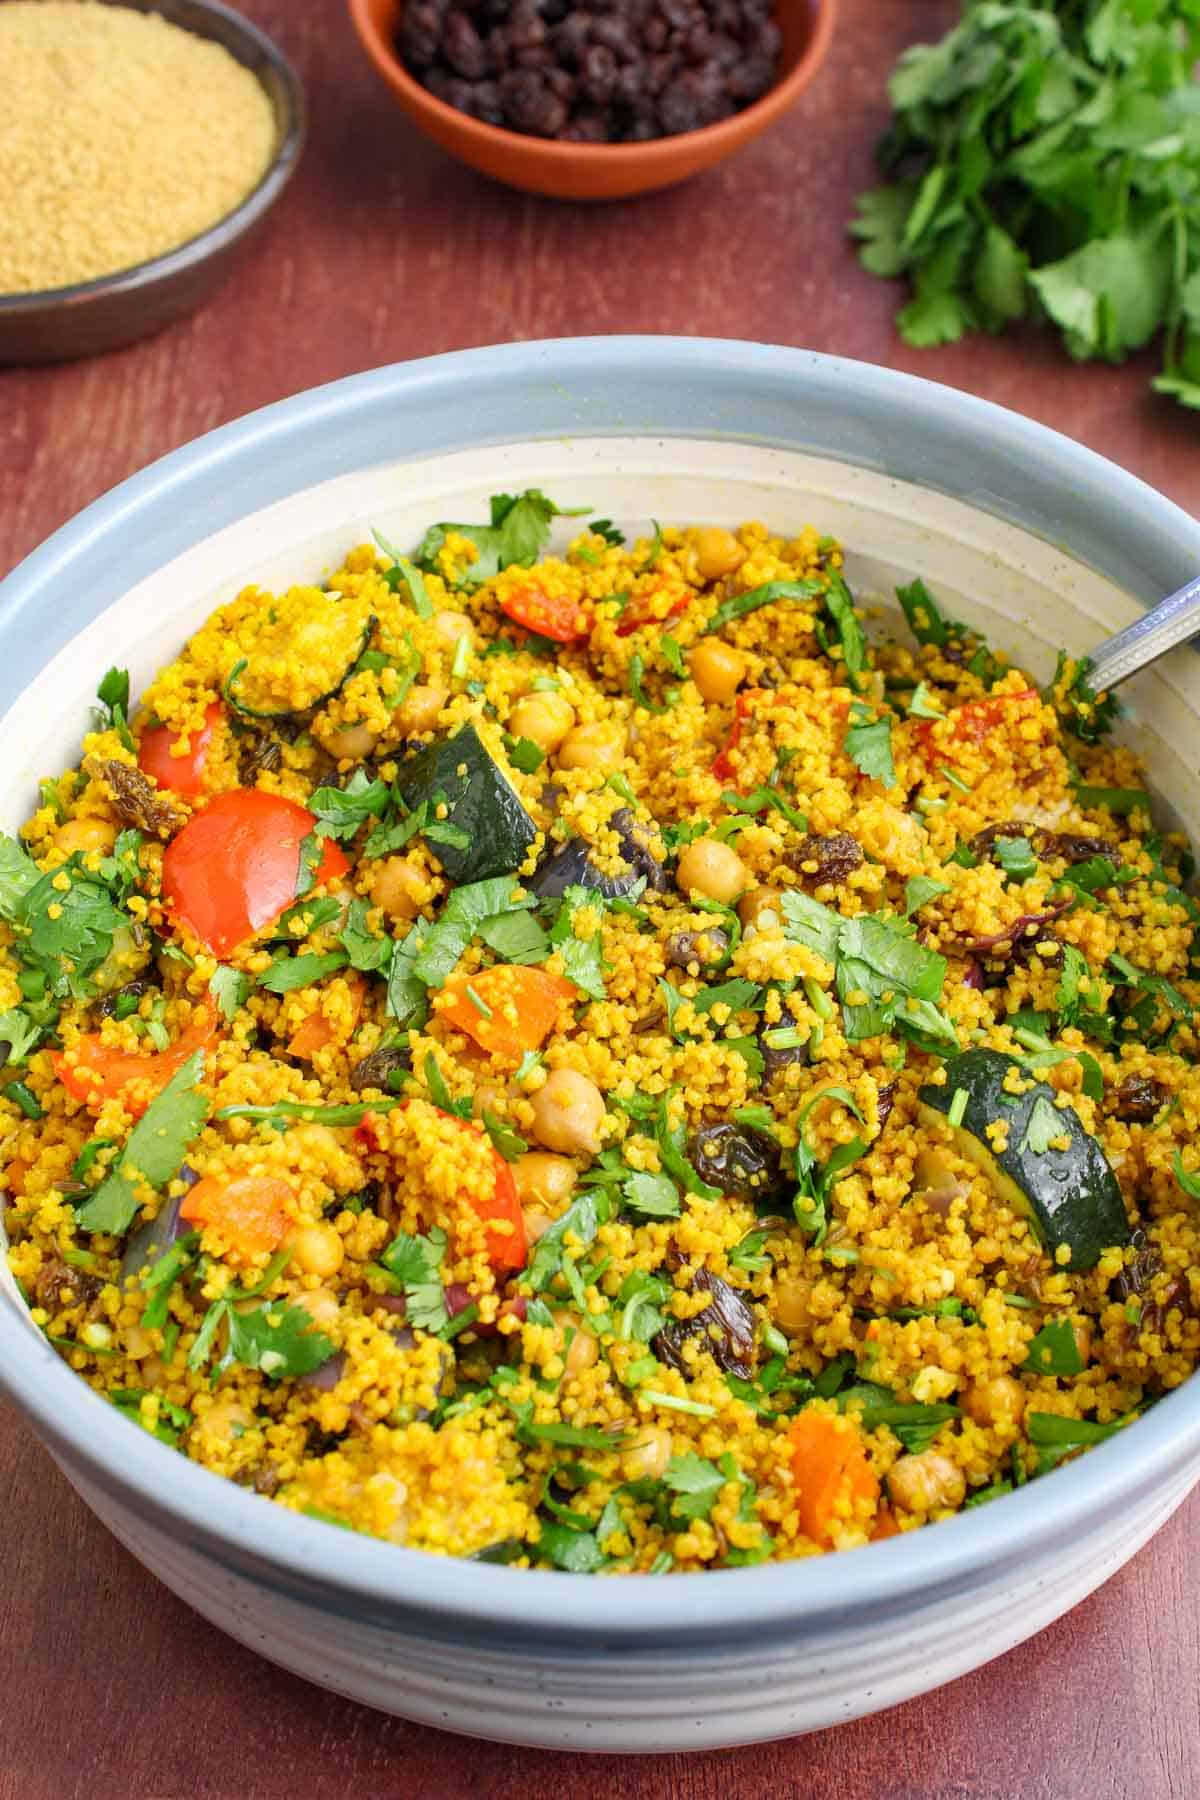 Couscous Salad with Chickpeas and Veg in Bowl